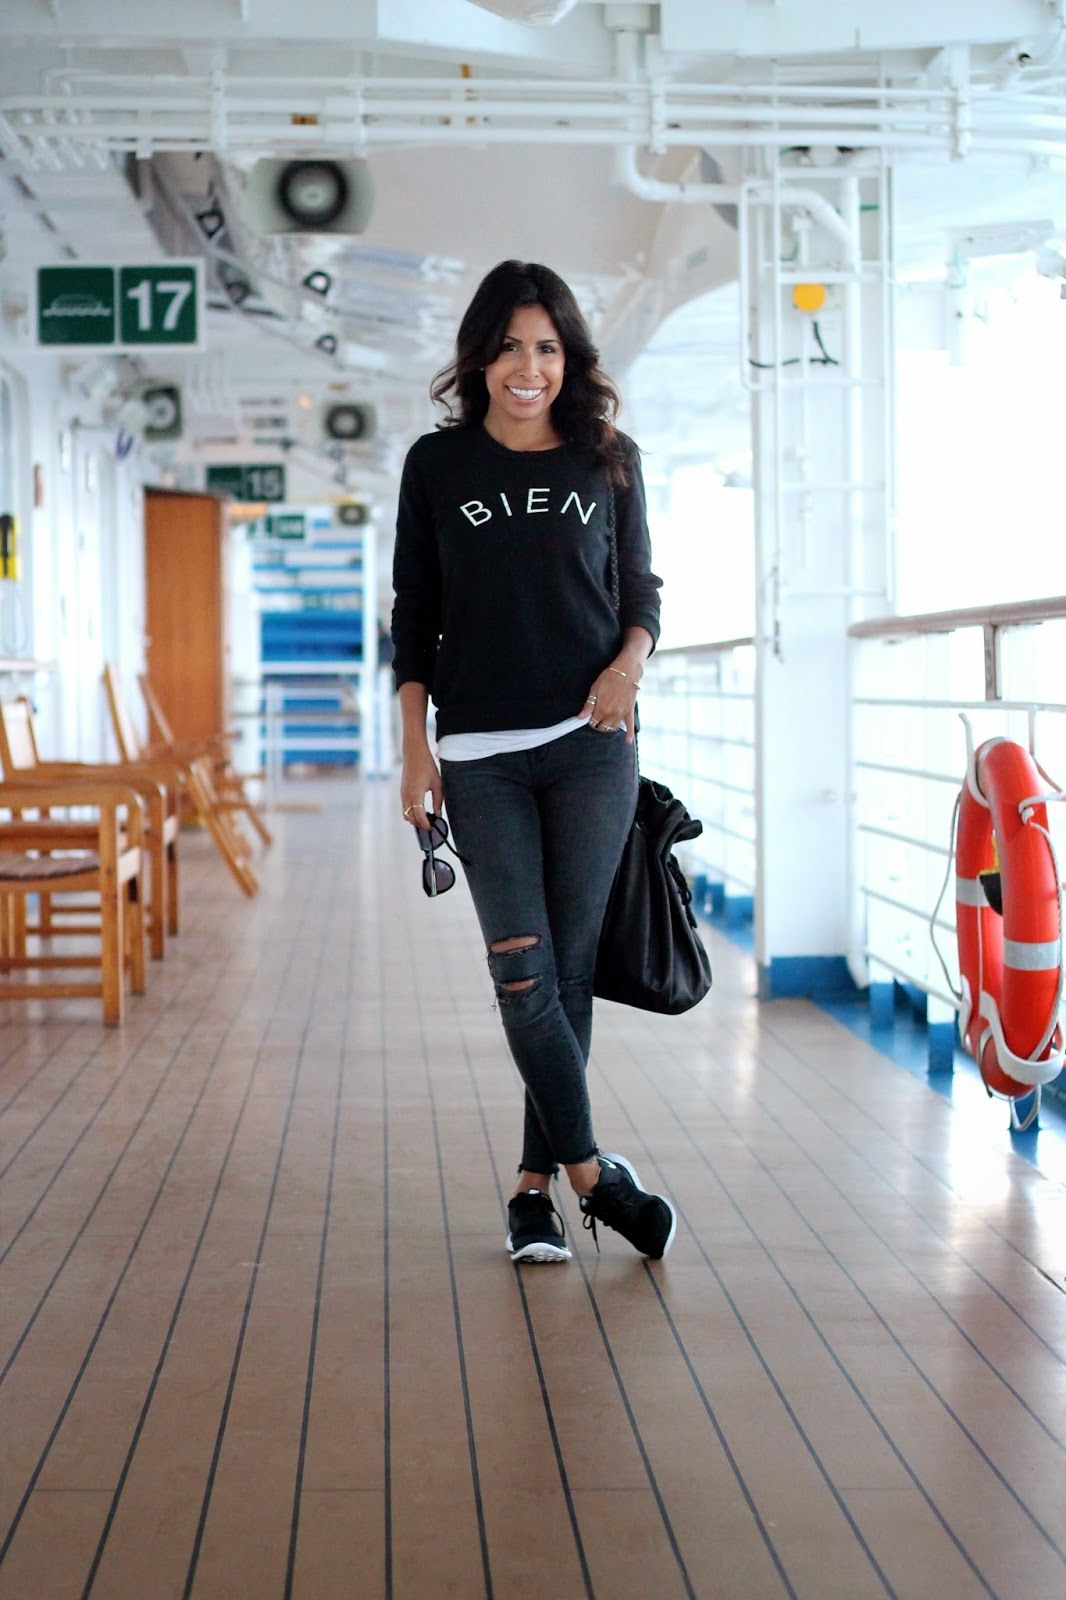 nike free shoes casual friday look jbrand how to